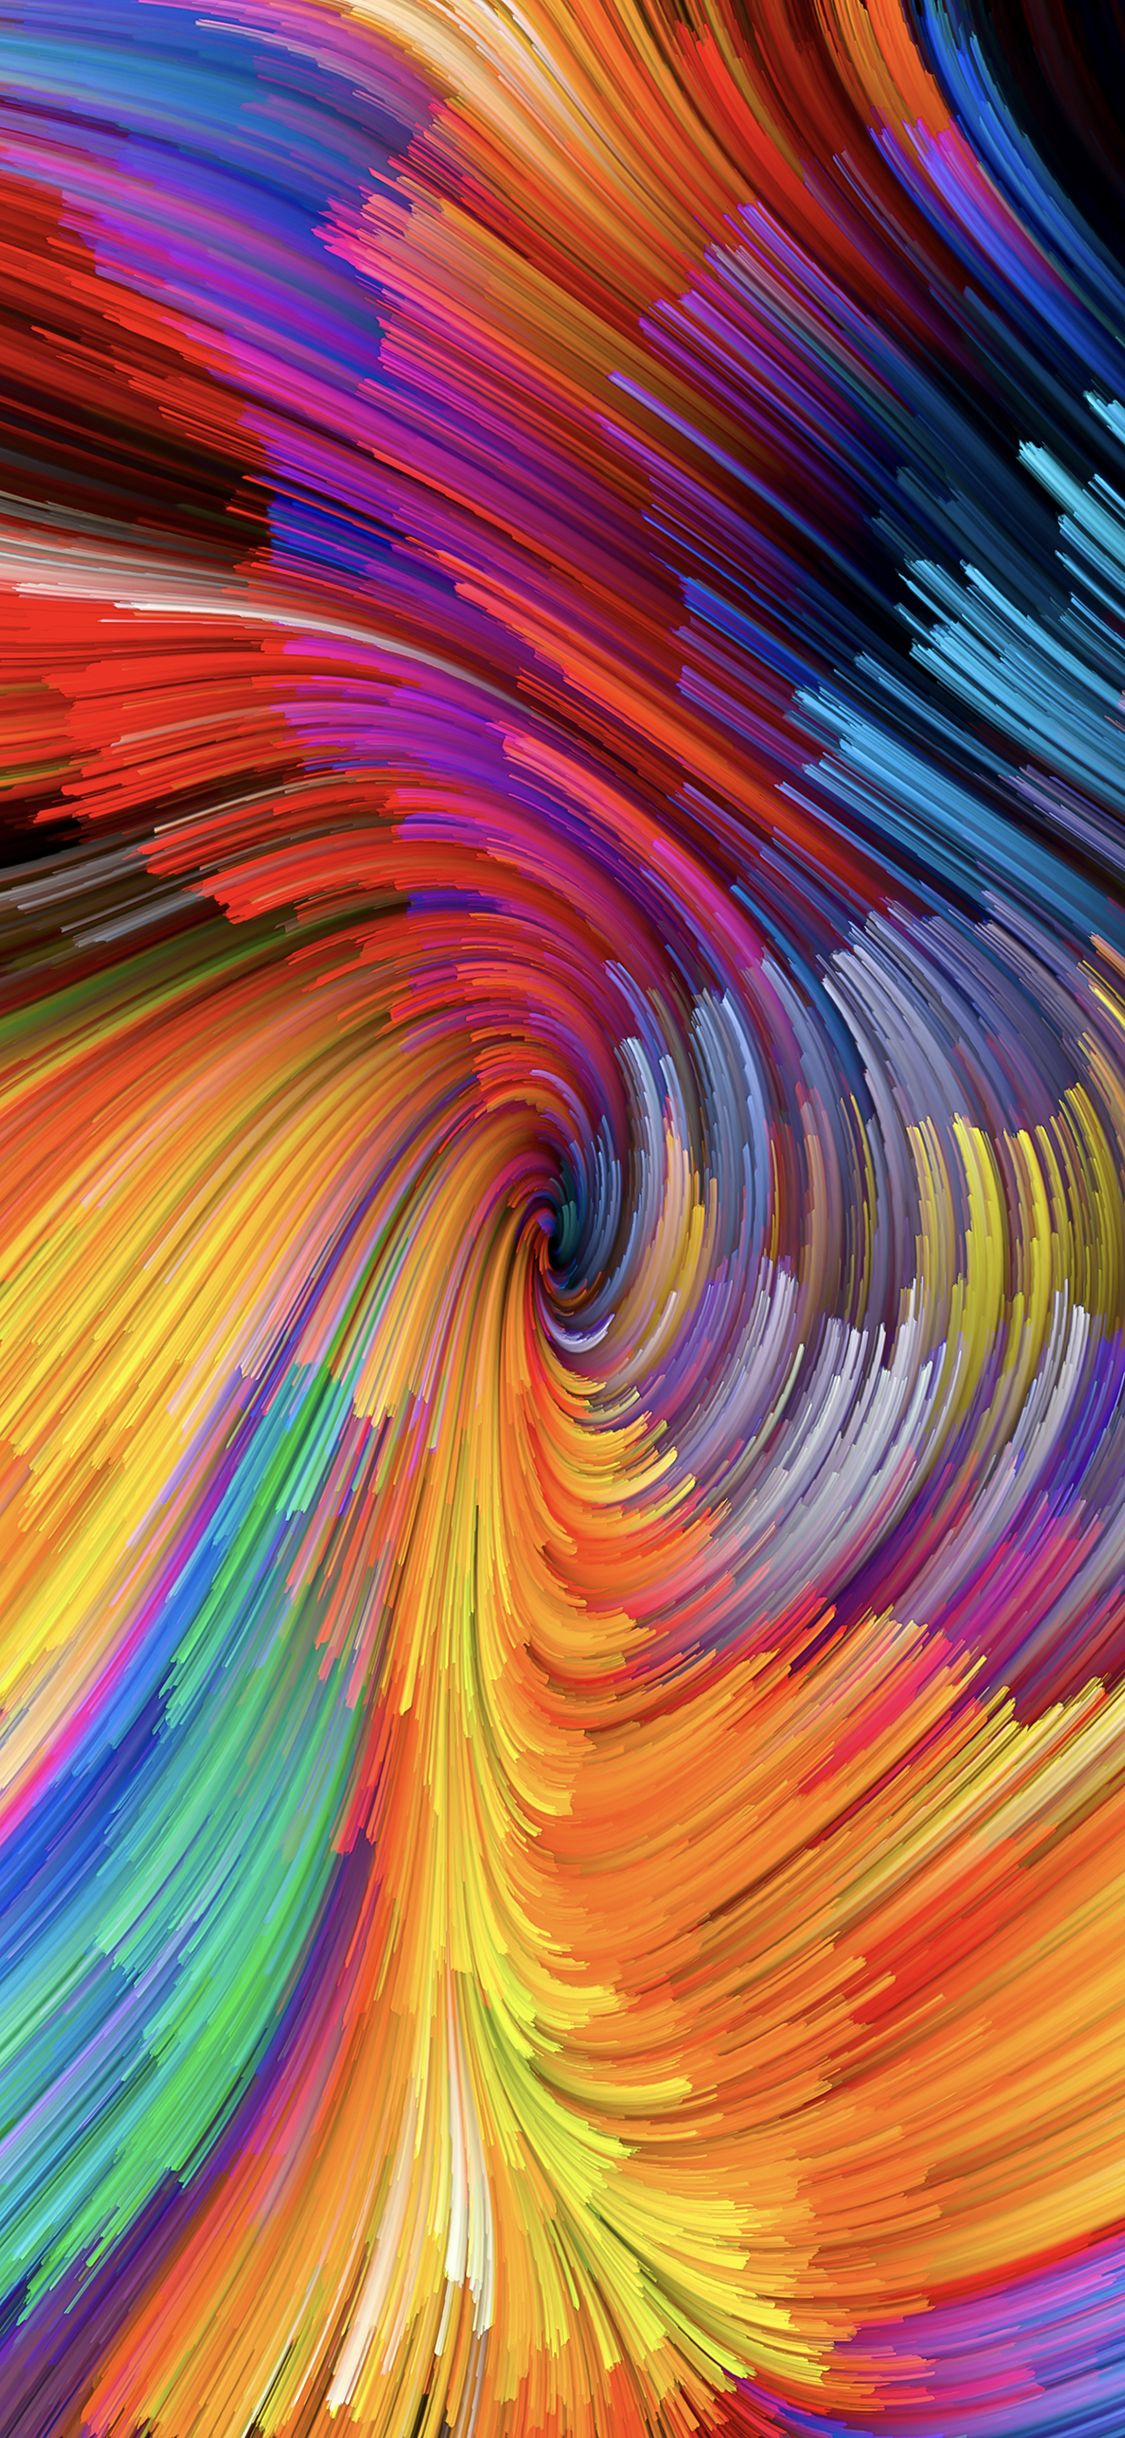 A Swirl Of Fibers From Macos Mojave Painting Wallpaper Abstract Wallpaper Phone Wallpaper